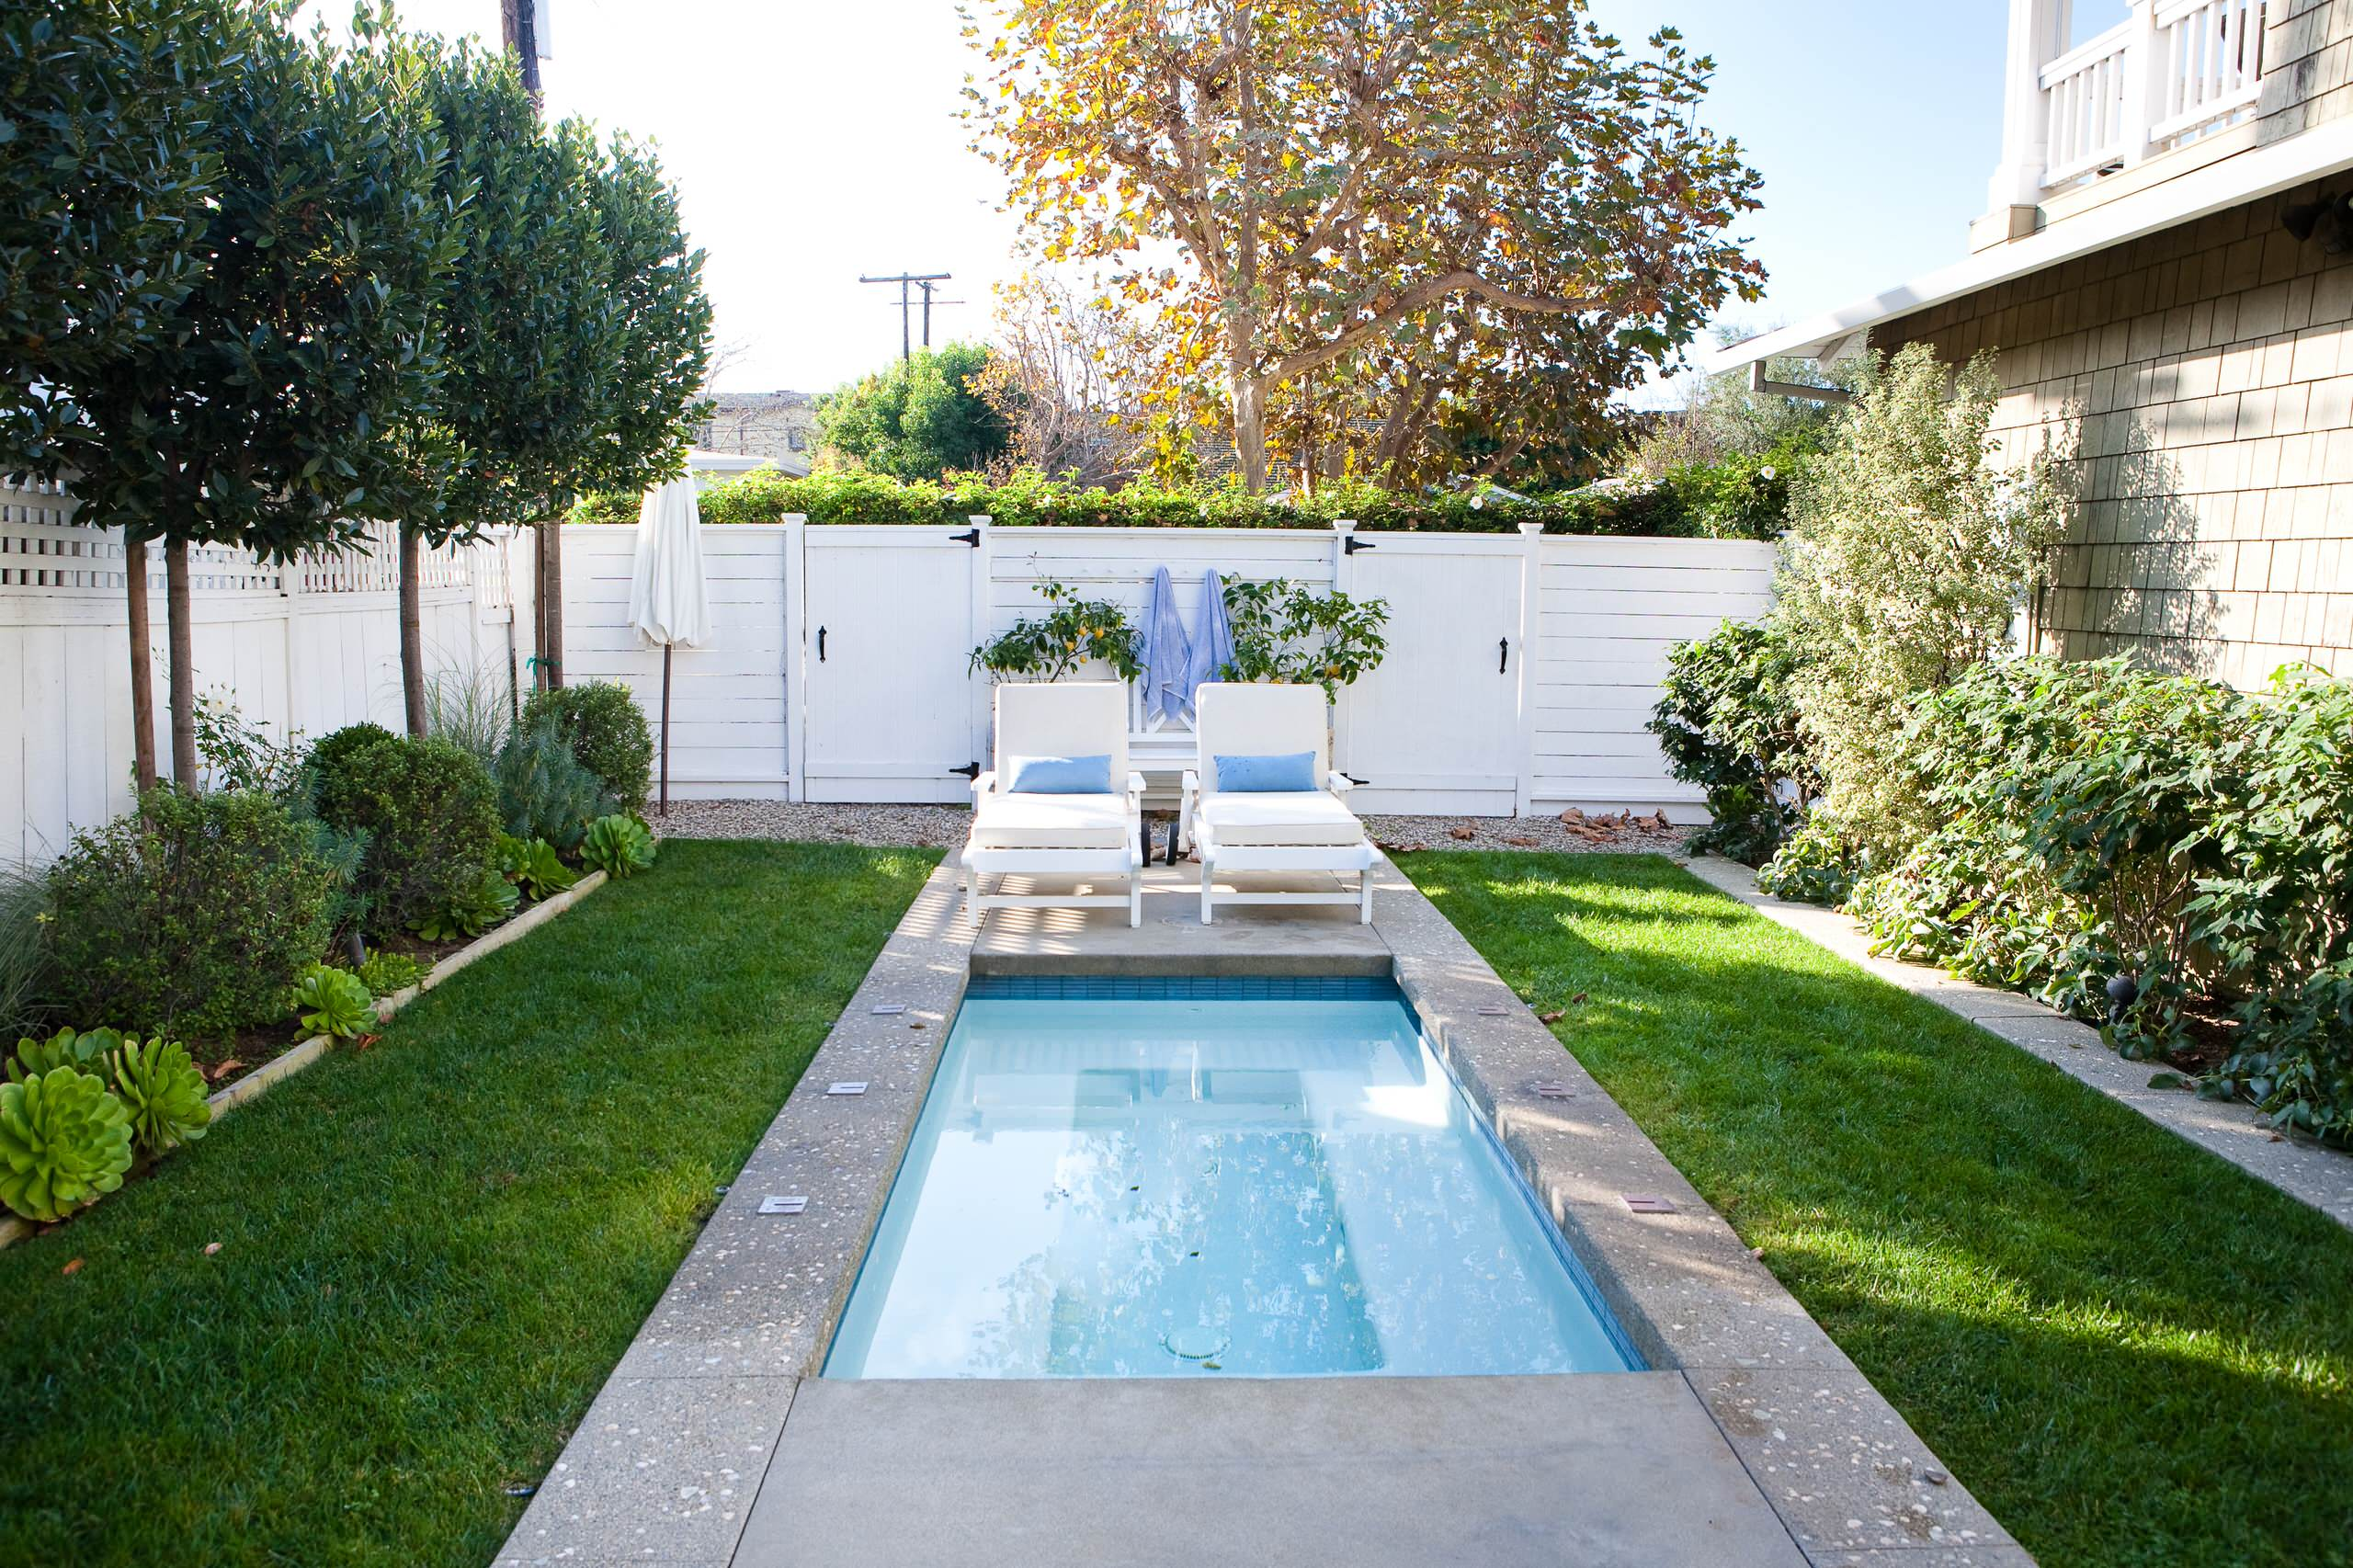 75 Beautiful Small Backyard Pool Pictures Ideas March 2021 Houzz